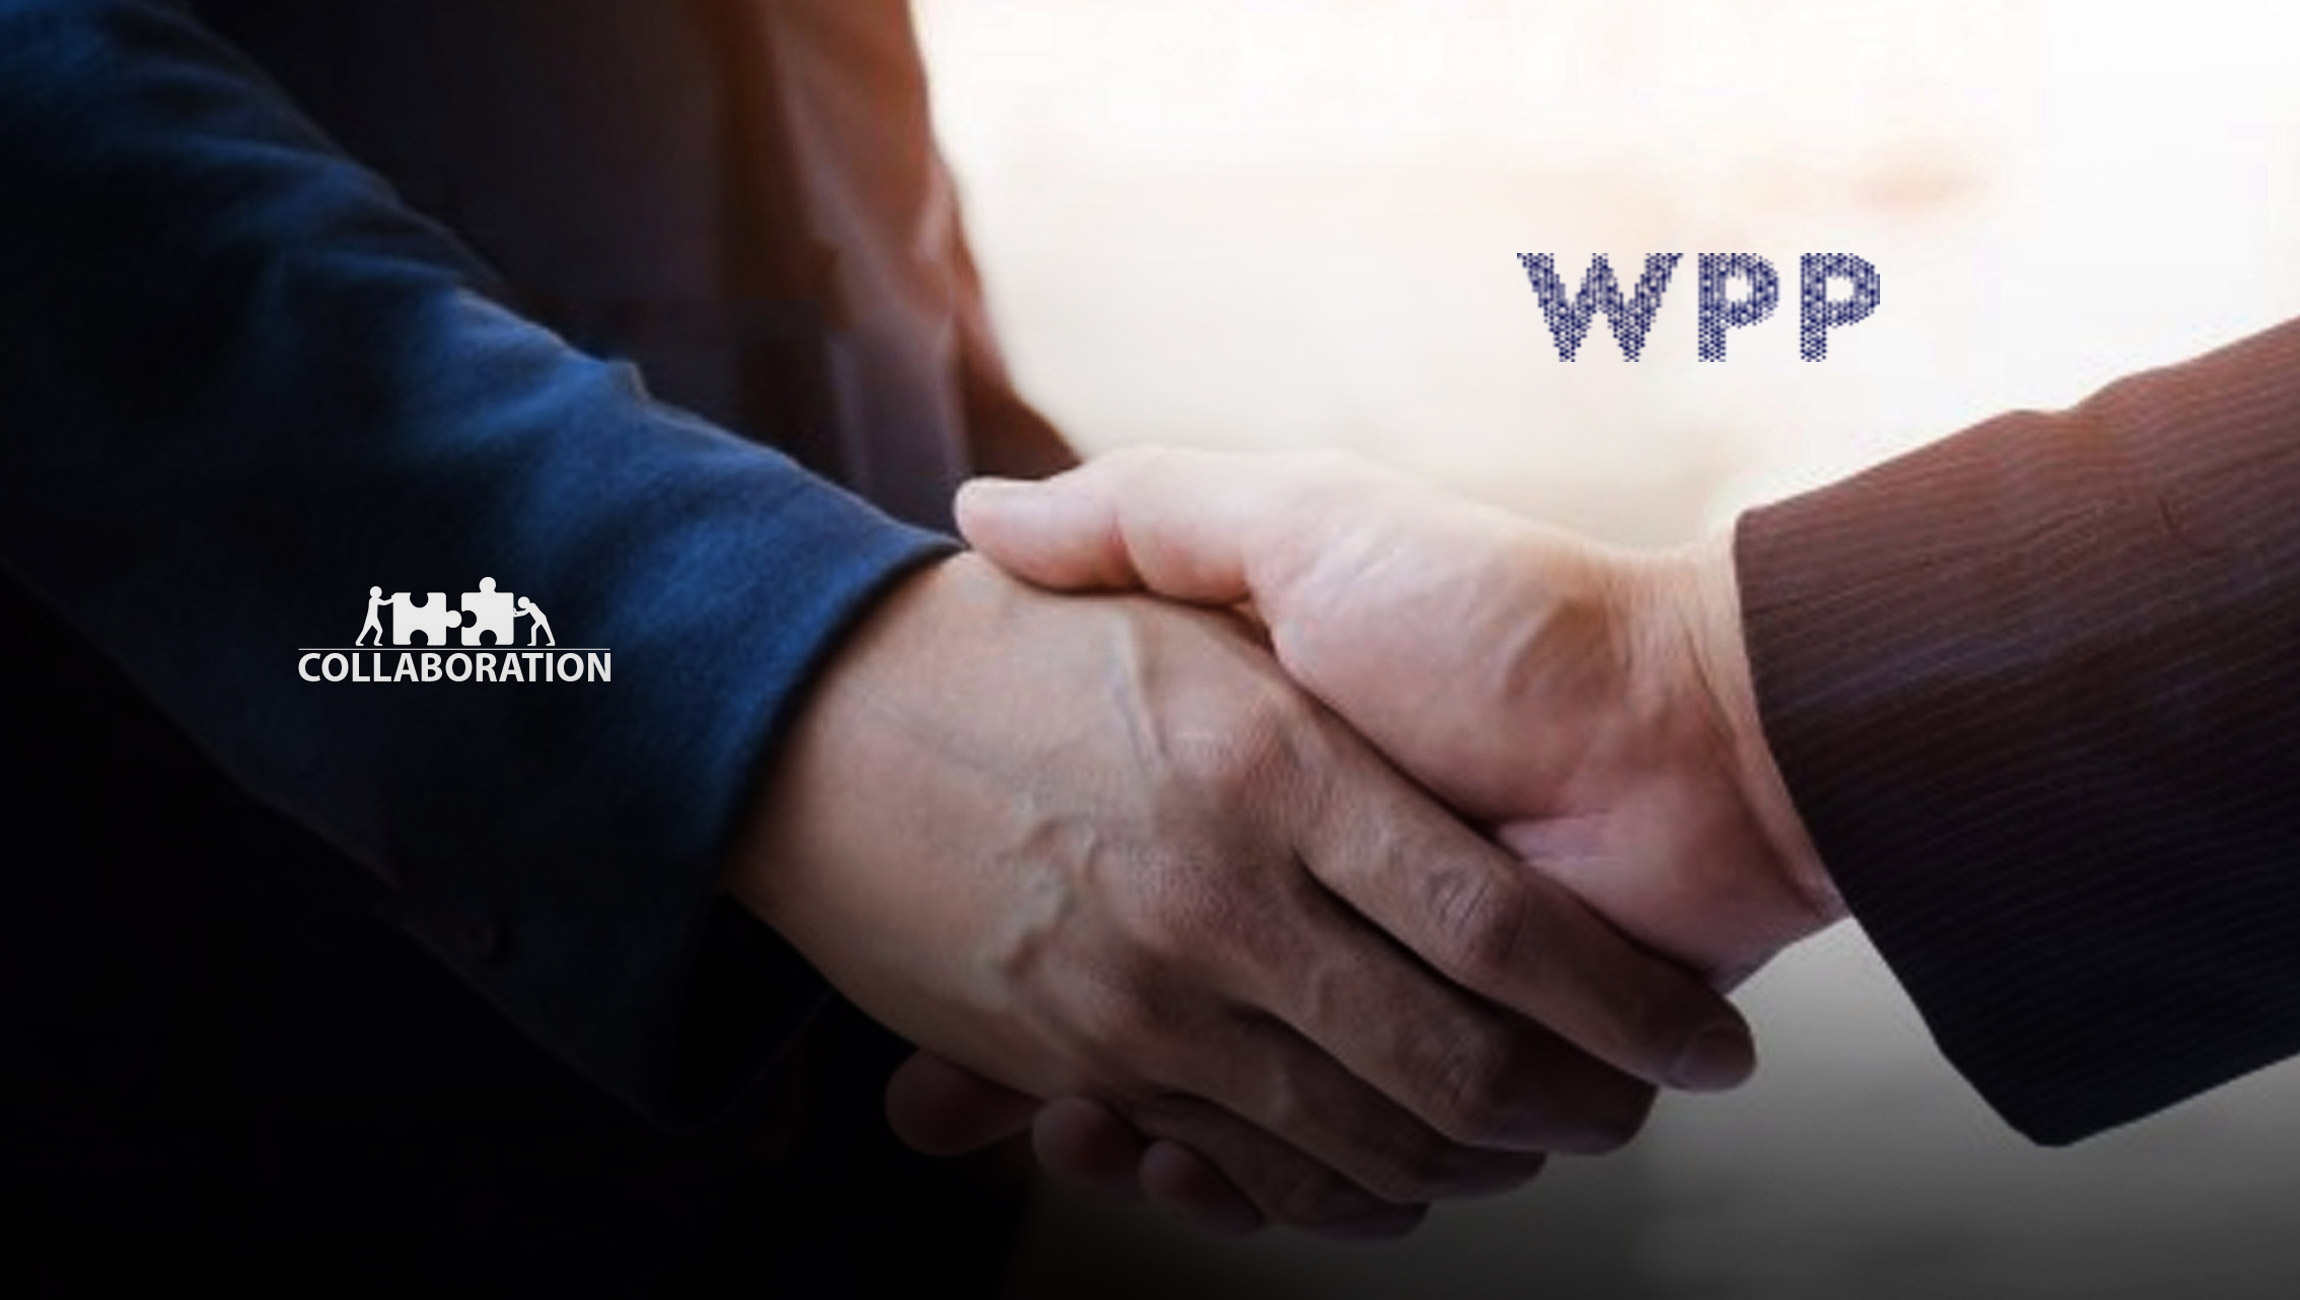 WPP and TikTok Announce First-of-Its-Kind Global Agency Partnership